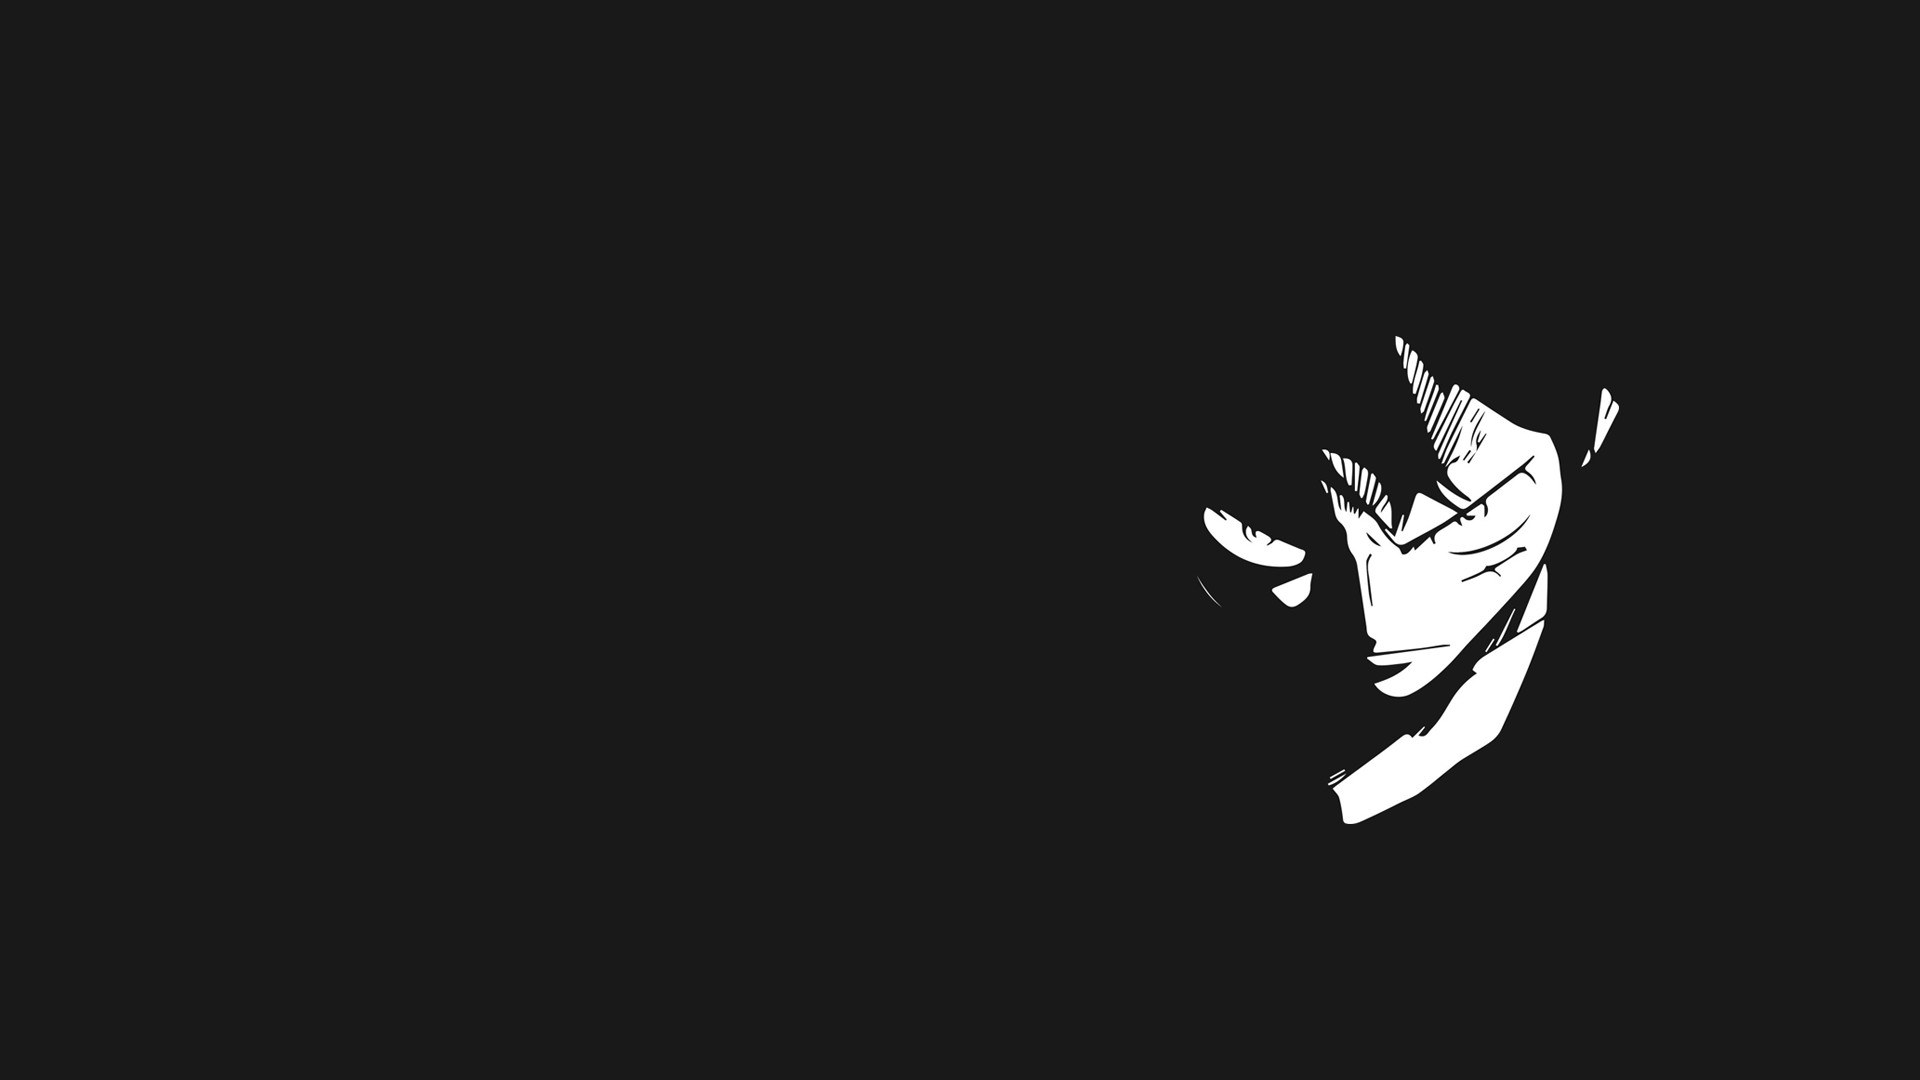 One Piece Wallpaper 1920x1080